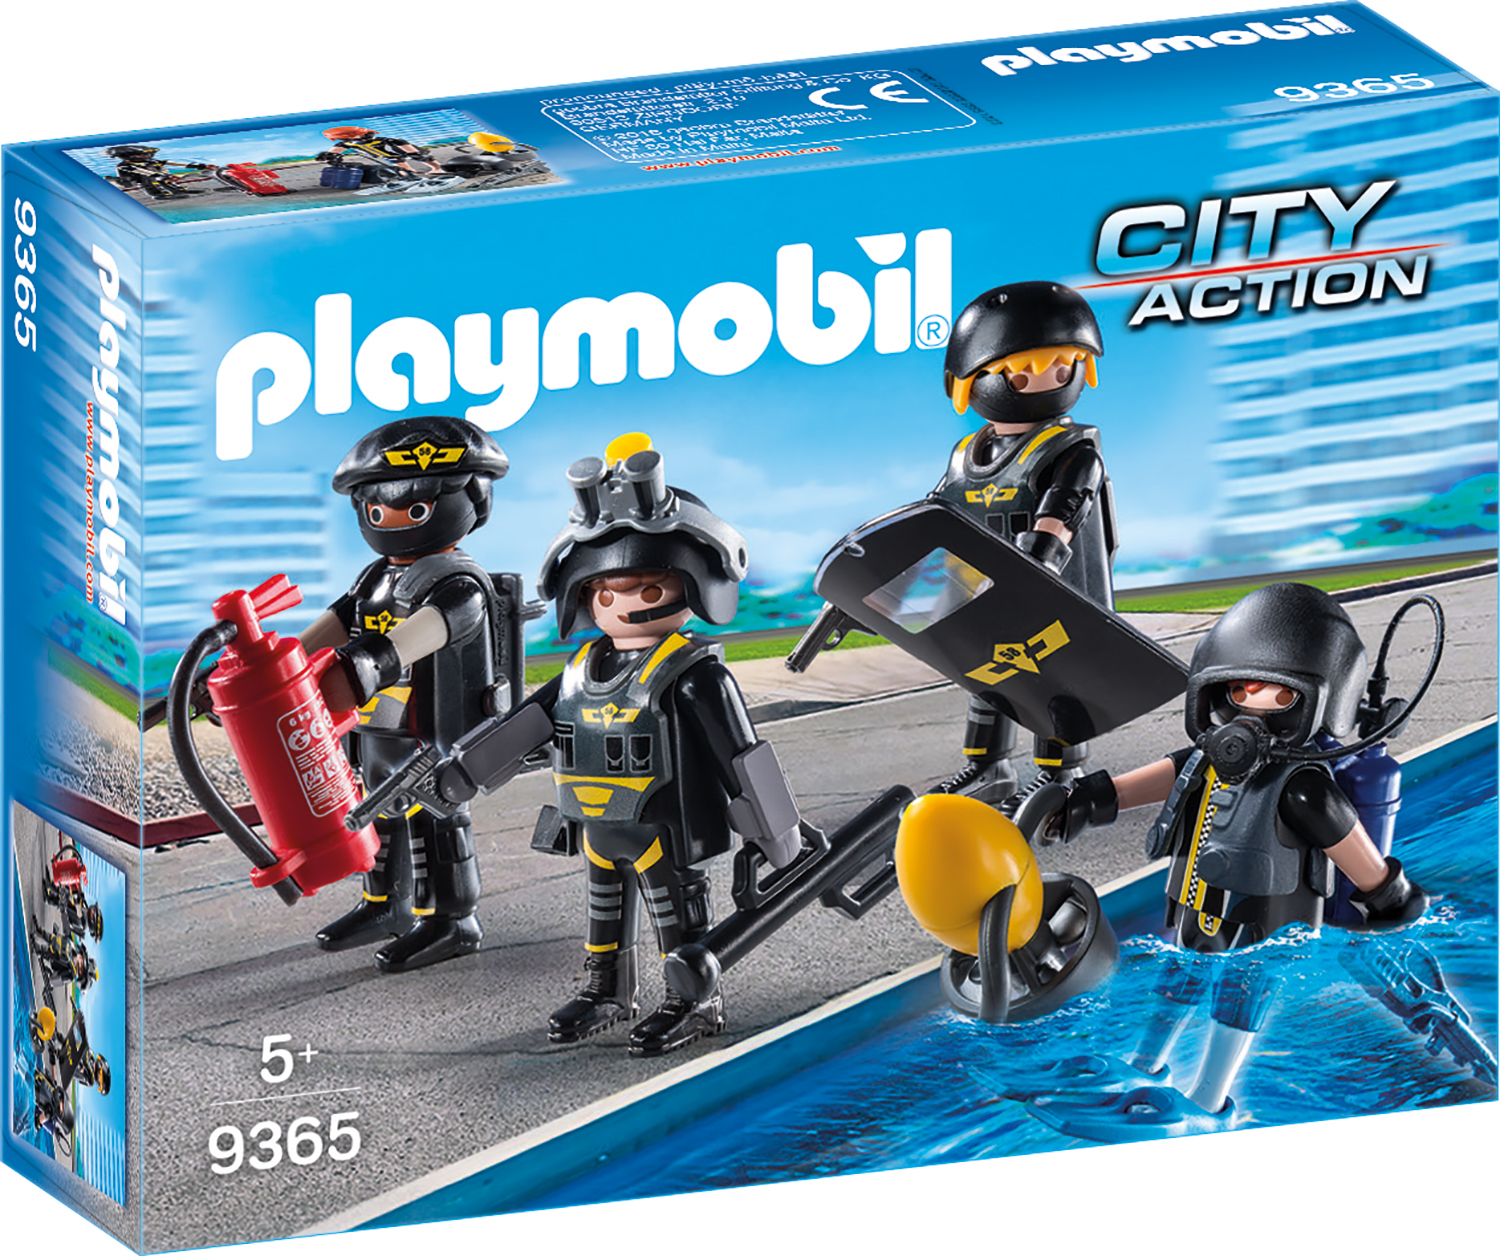 Echipa swat playmobil city action